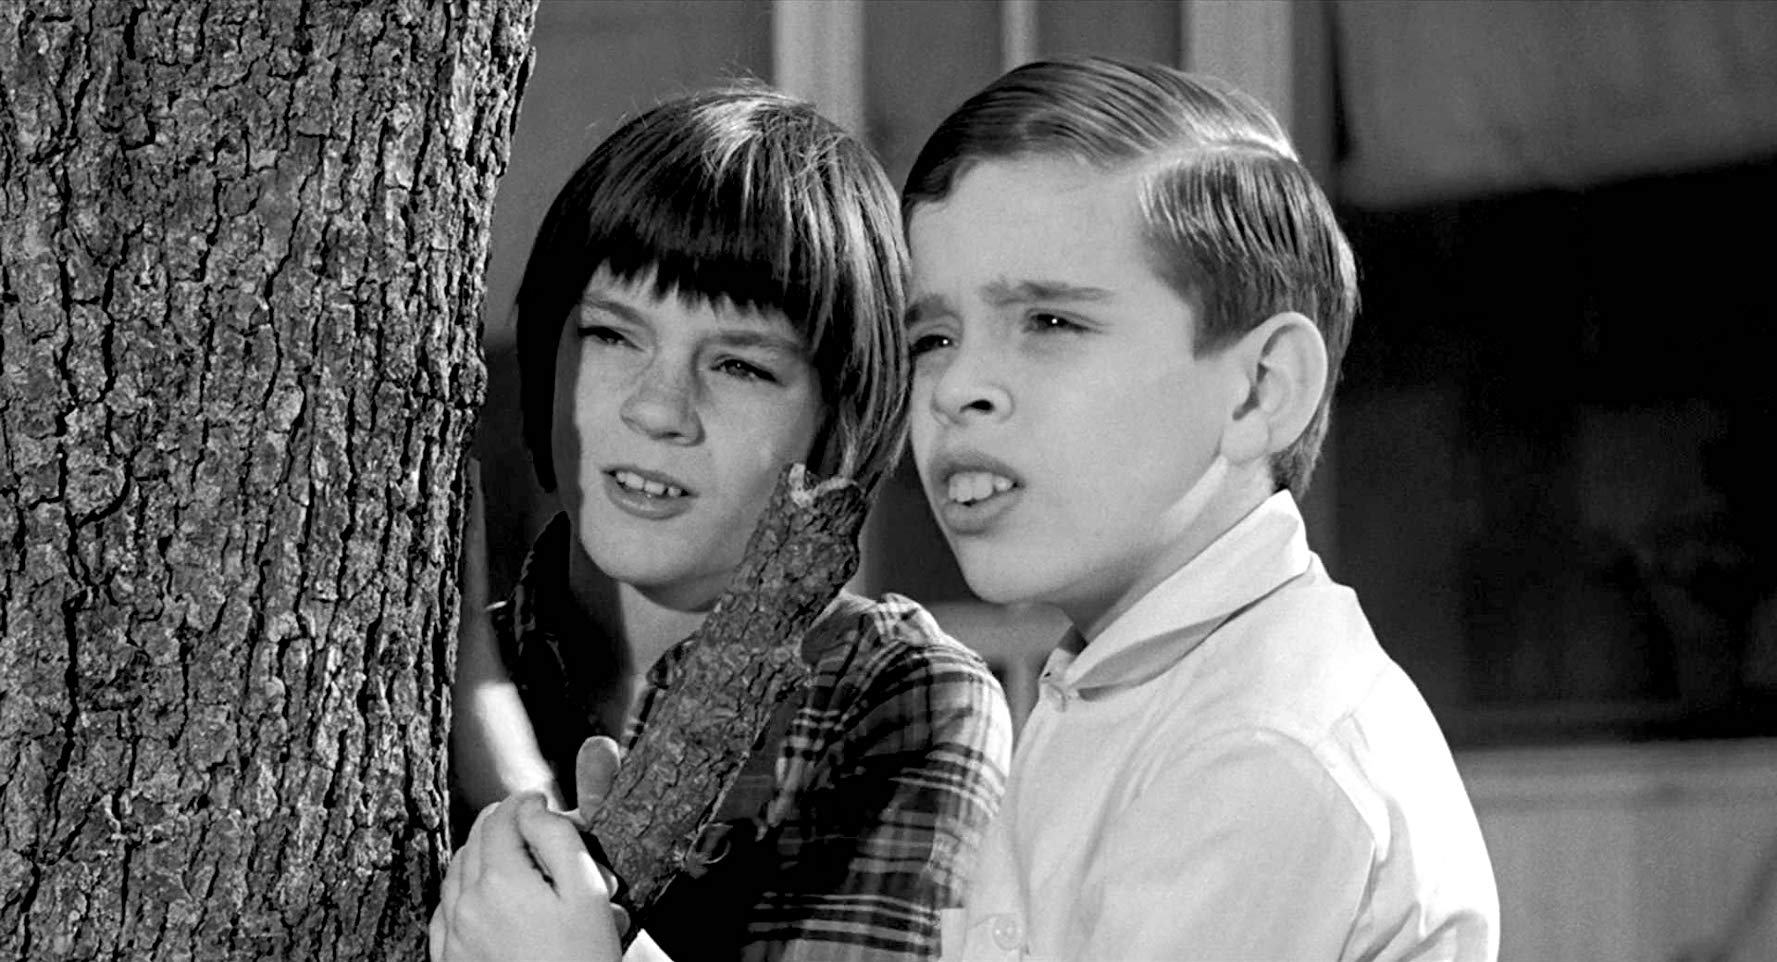 Scout and Dill in To Kill A Mockingbird